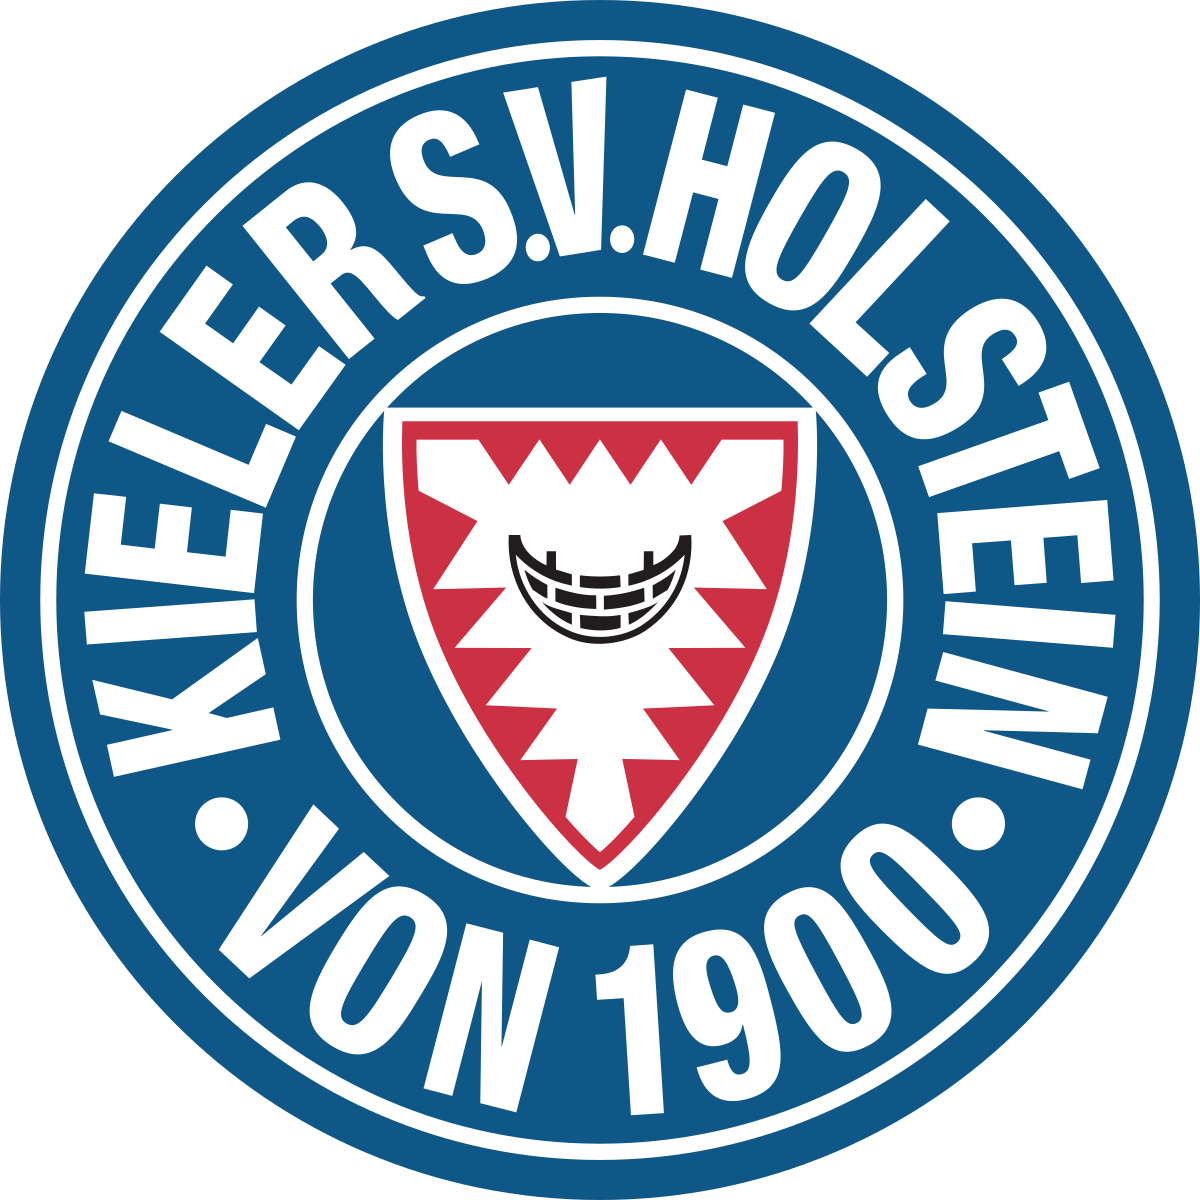 Club of the Month: Holstein Kiel - Game of the People